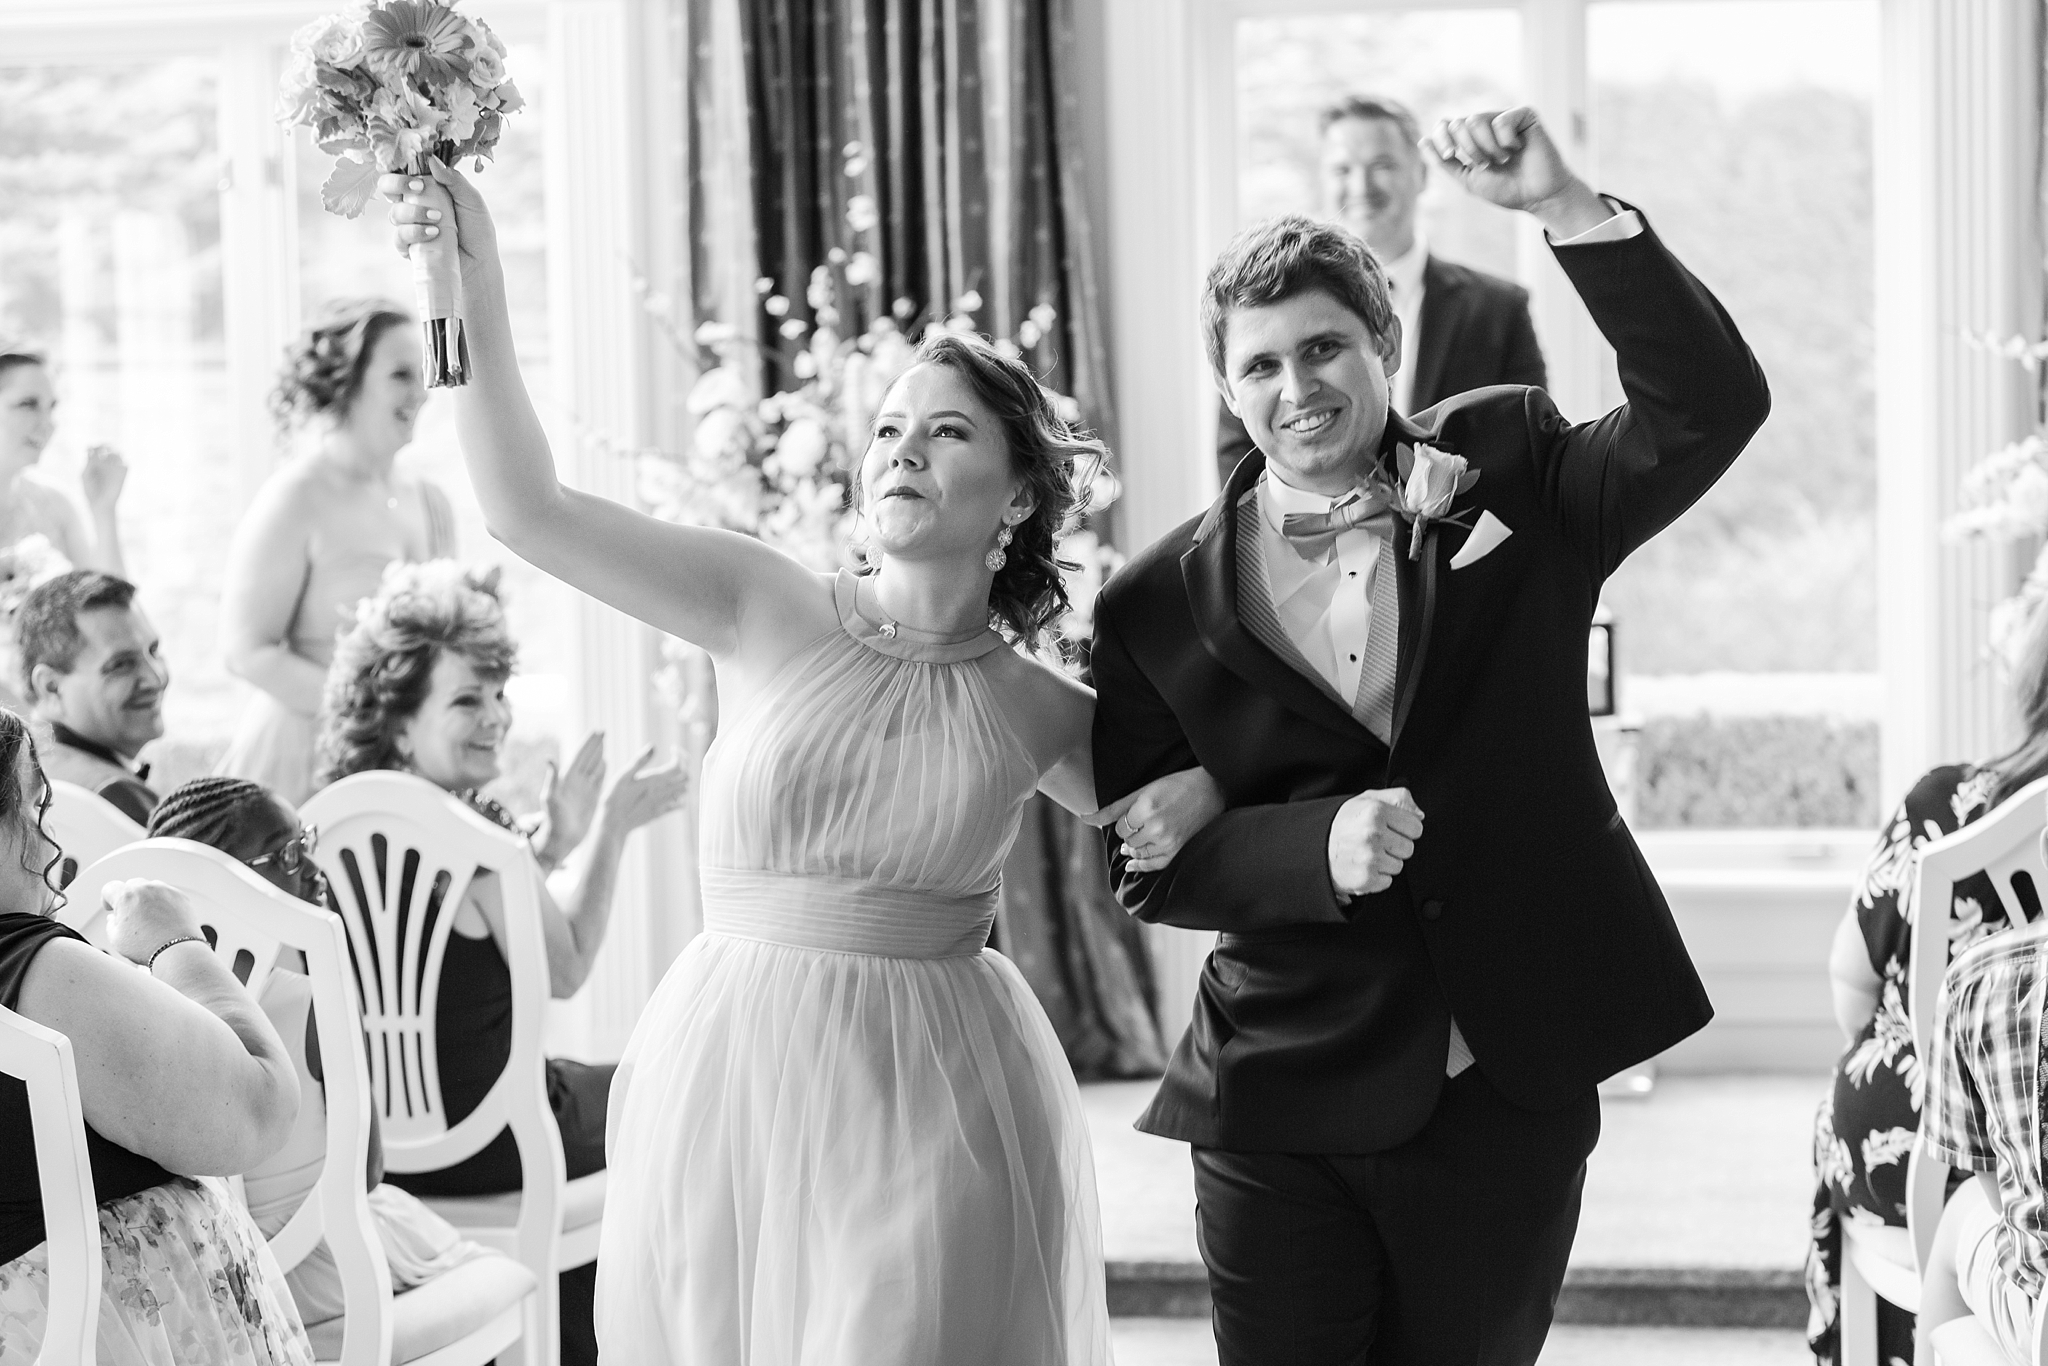 romantic-artful-candid-wedding-photos-in-st-clair-shores-at-the-white-house-wedding-chapel-by-courtney-carolyn-photography_0035.jpg